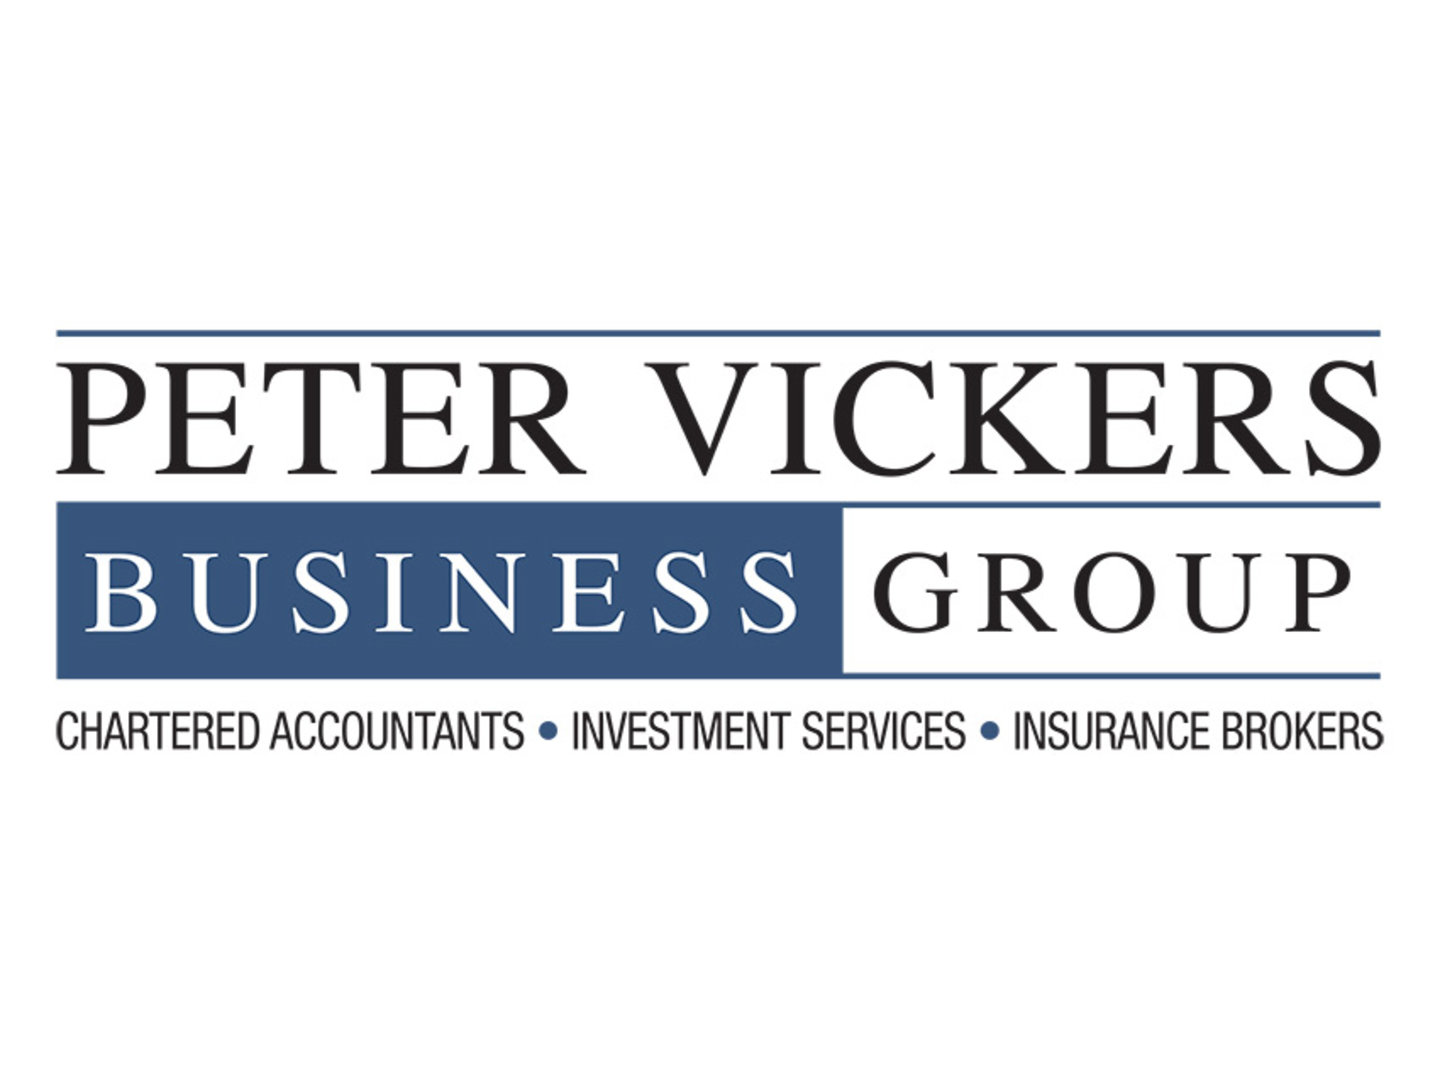 Peter Vickers Business Group is a boutique Financial Services Firm based in Lindfield, we have over 40years experience in getting the best for our clients, our blog is a taster of how we aim to manage, protect and grow our clients wealth through prudent management and sound advice.